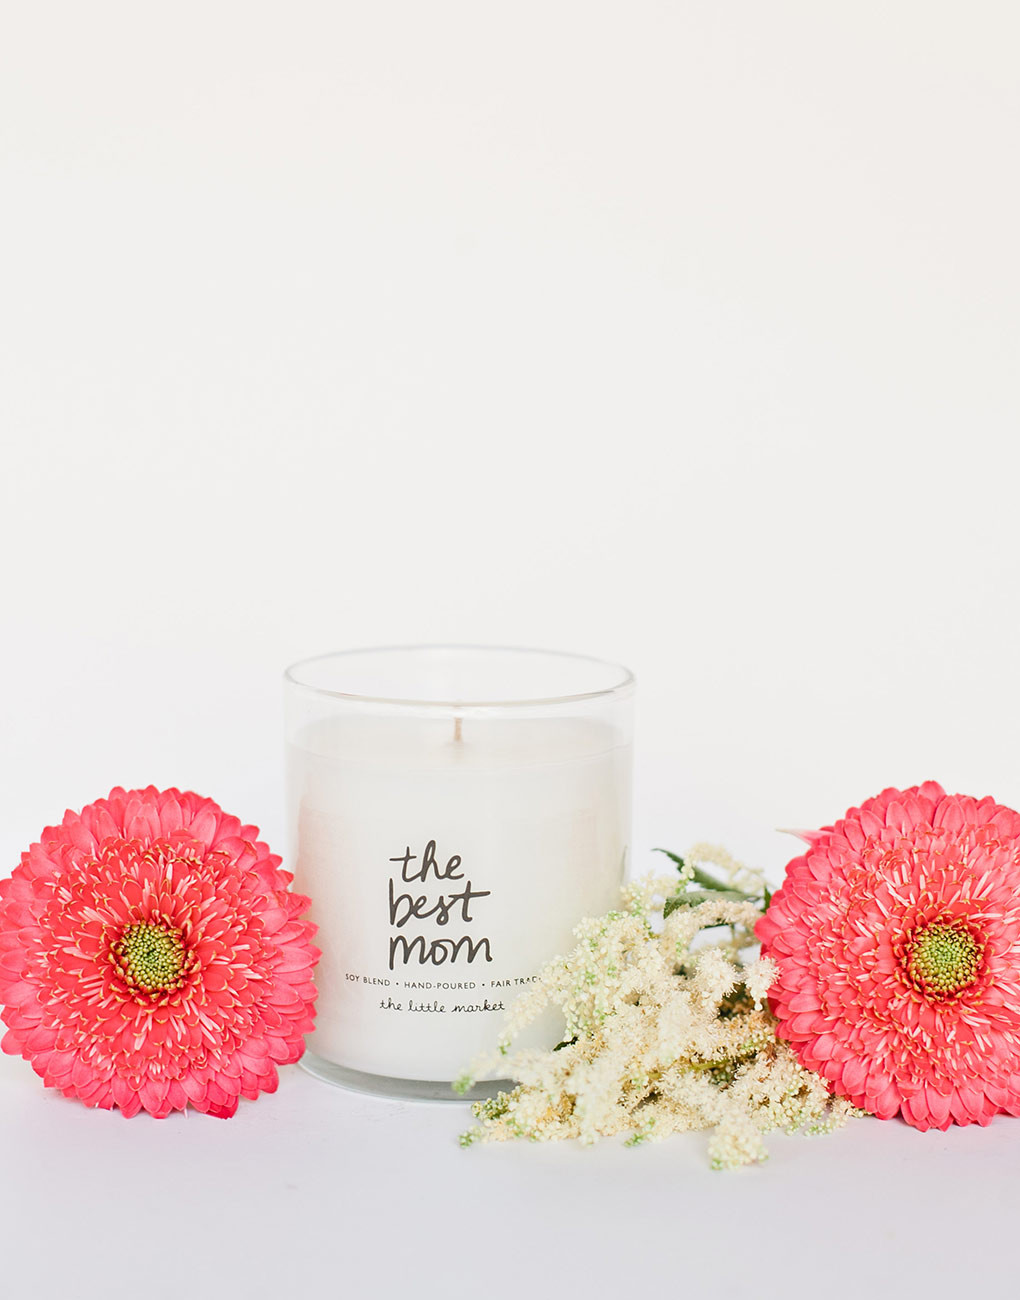 The Best Mom Candle, $26 @thelittlemarket.com